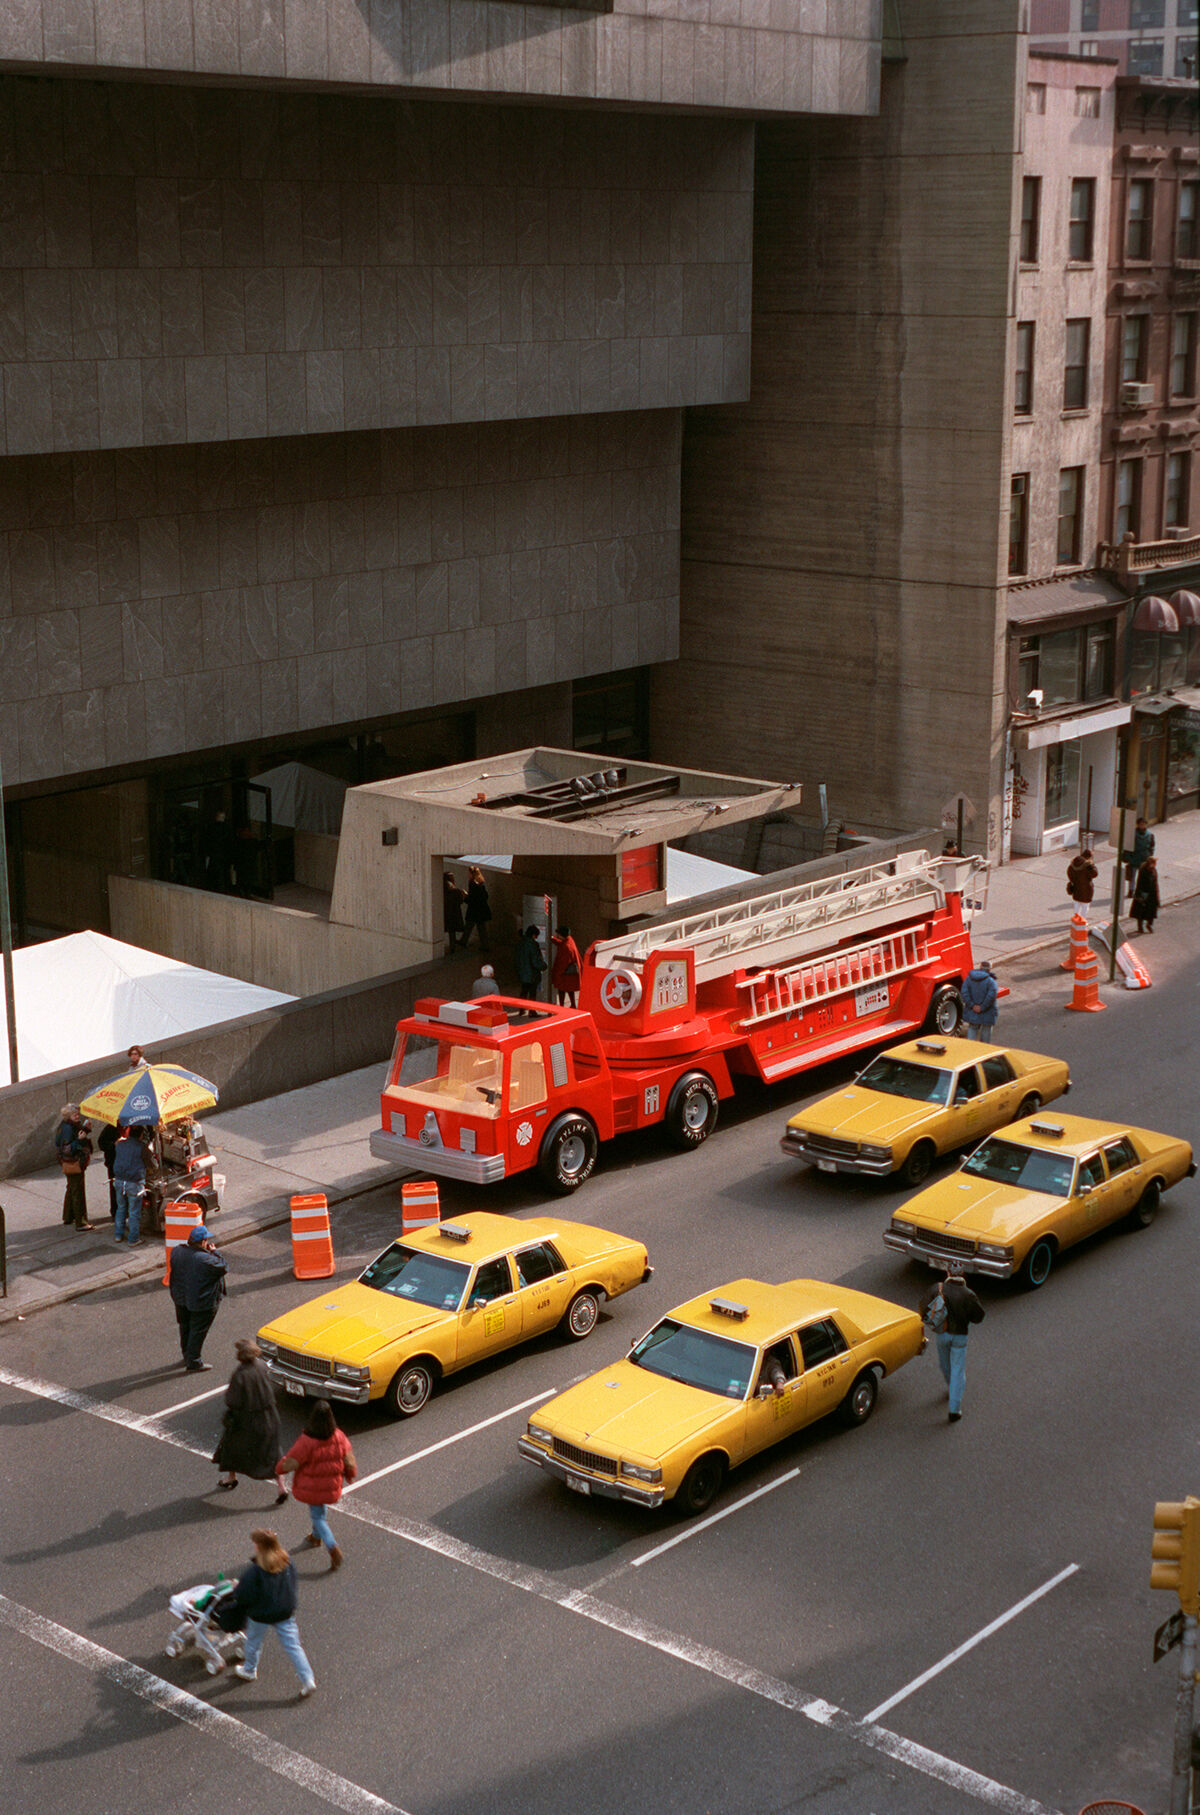 Charles Ray, Firetruck, 1993. © Charles Ray. Courtesy of Matthew Marks Gallery.